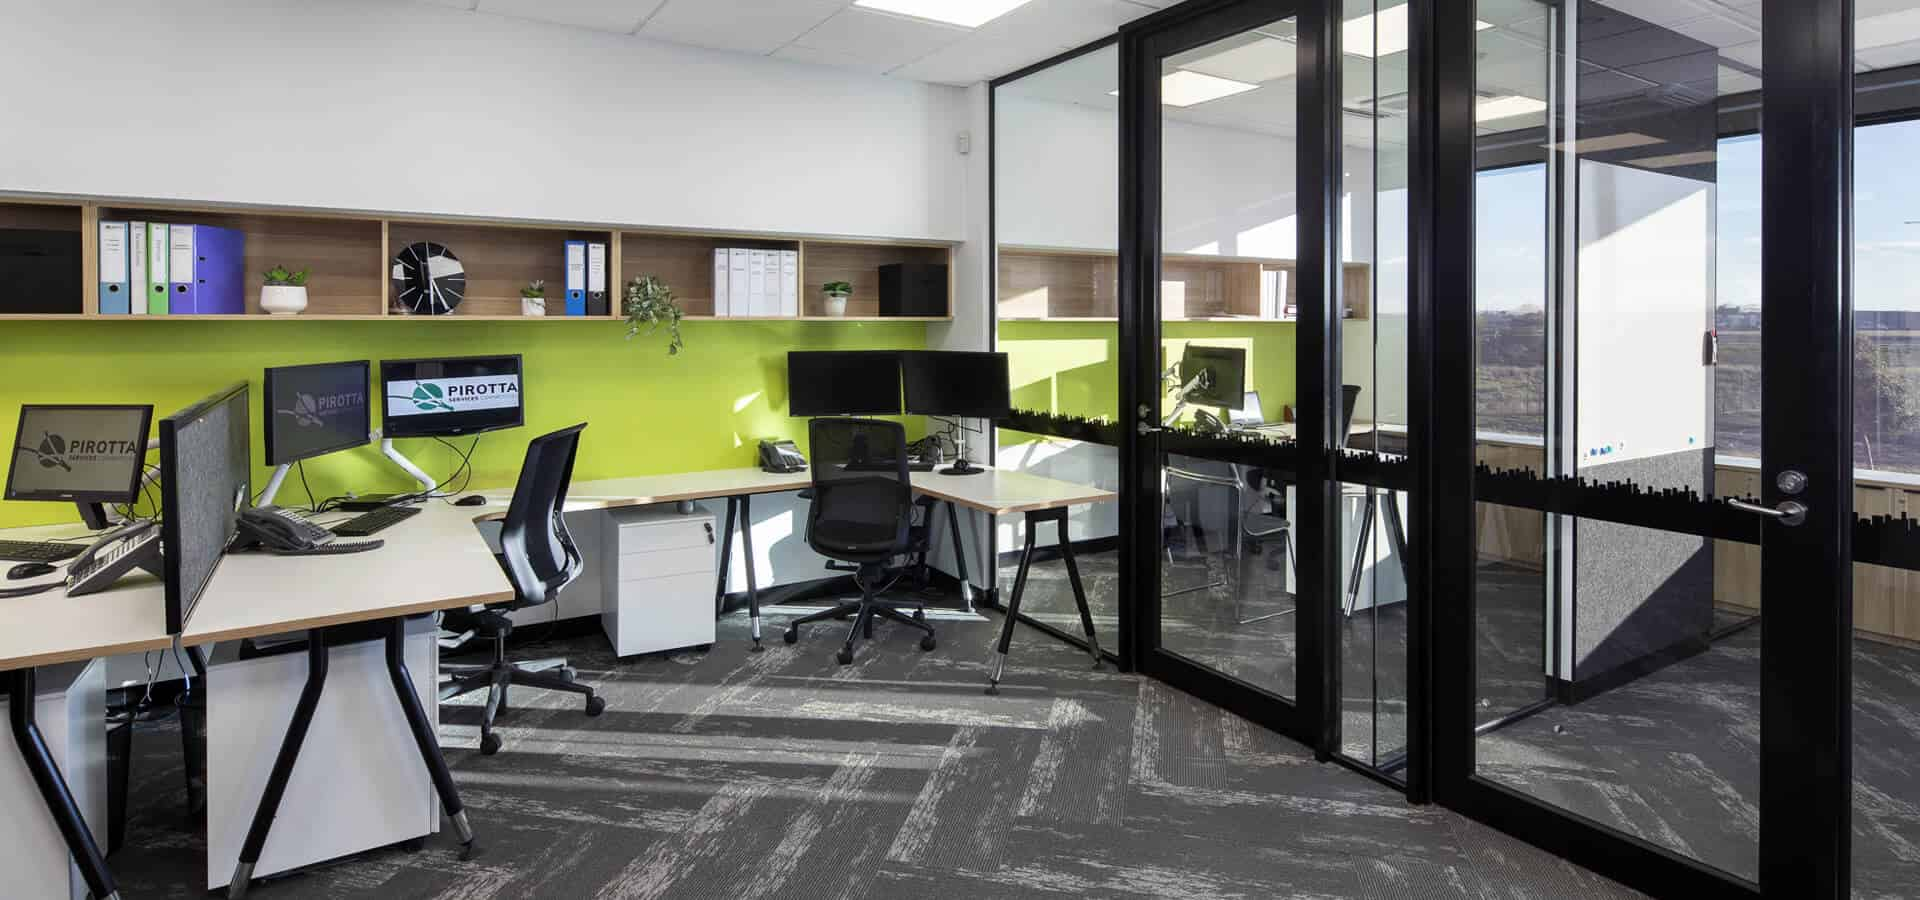 Cutting Edge Building Solutions and Commercial Fitouts in Melbourne.